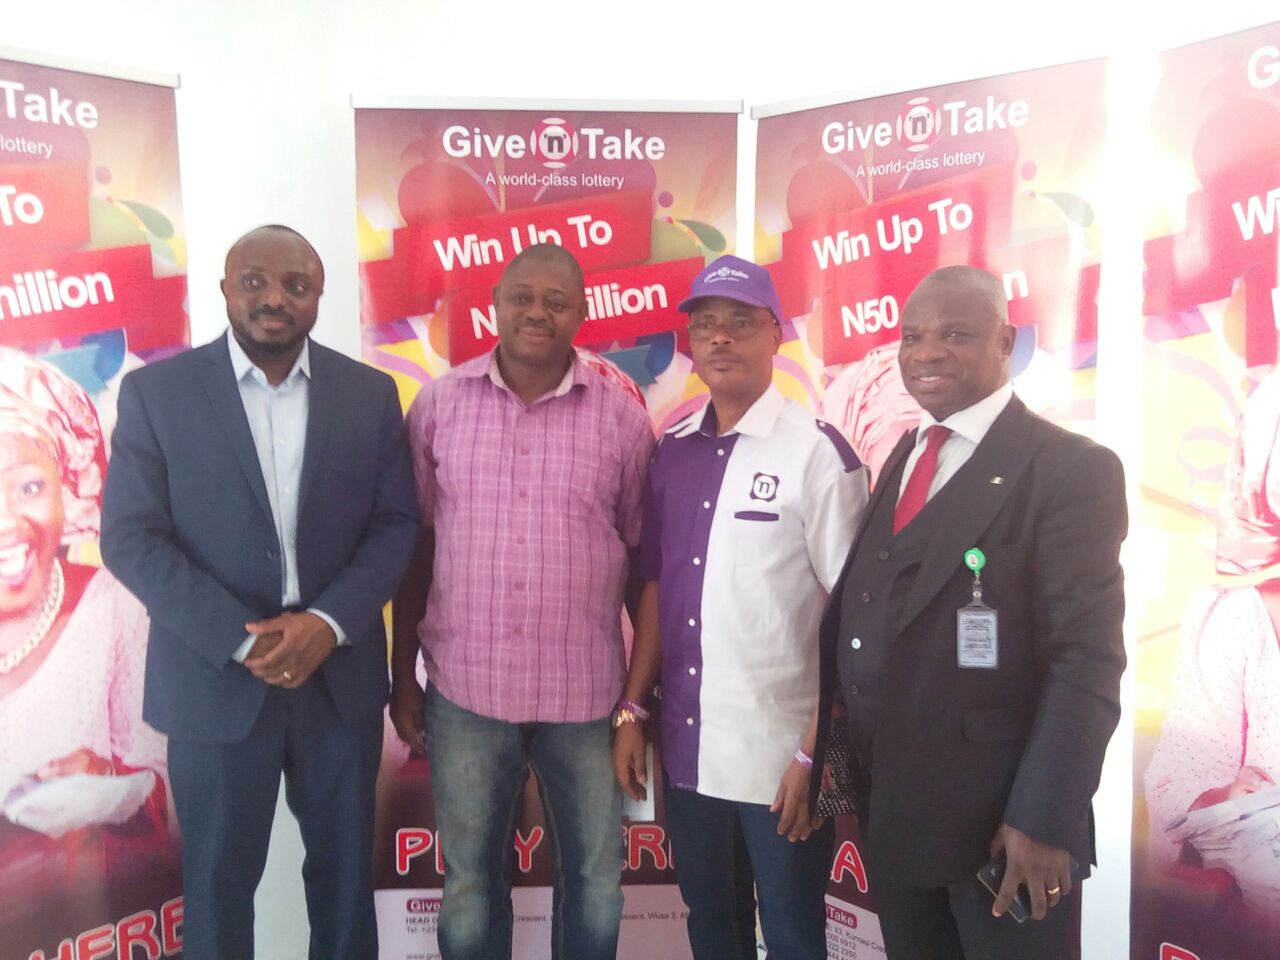 Give 'N' Take Lottery Launched In Lagos, Set For National Jackpot